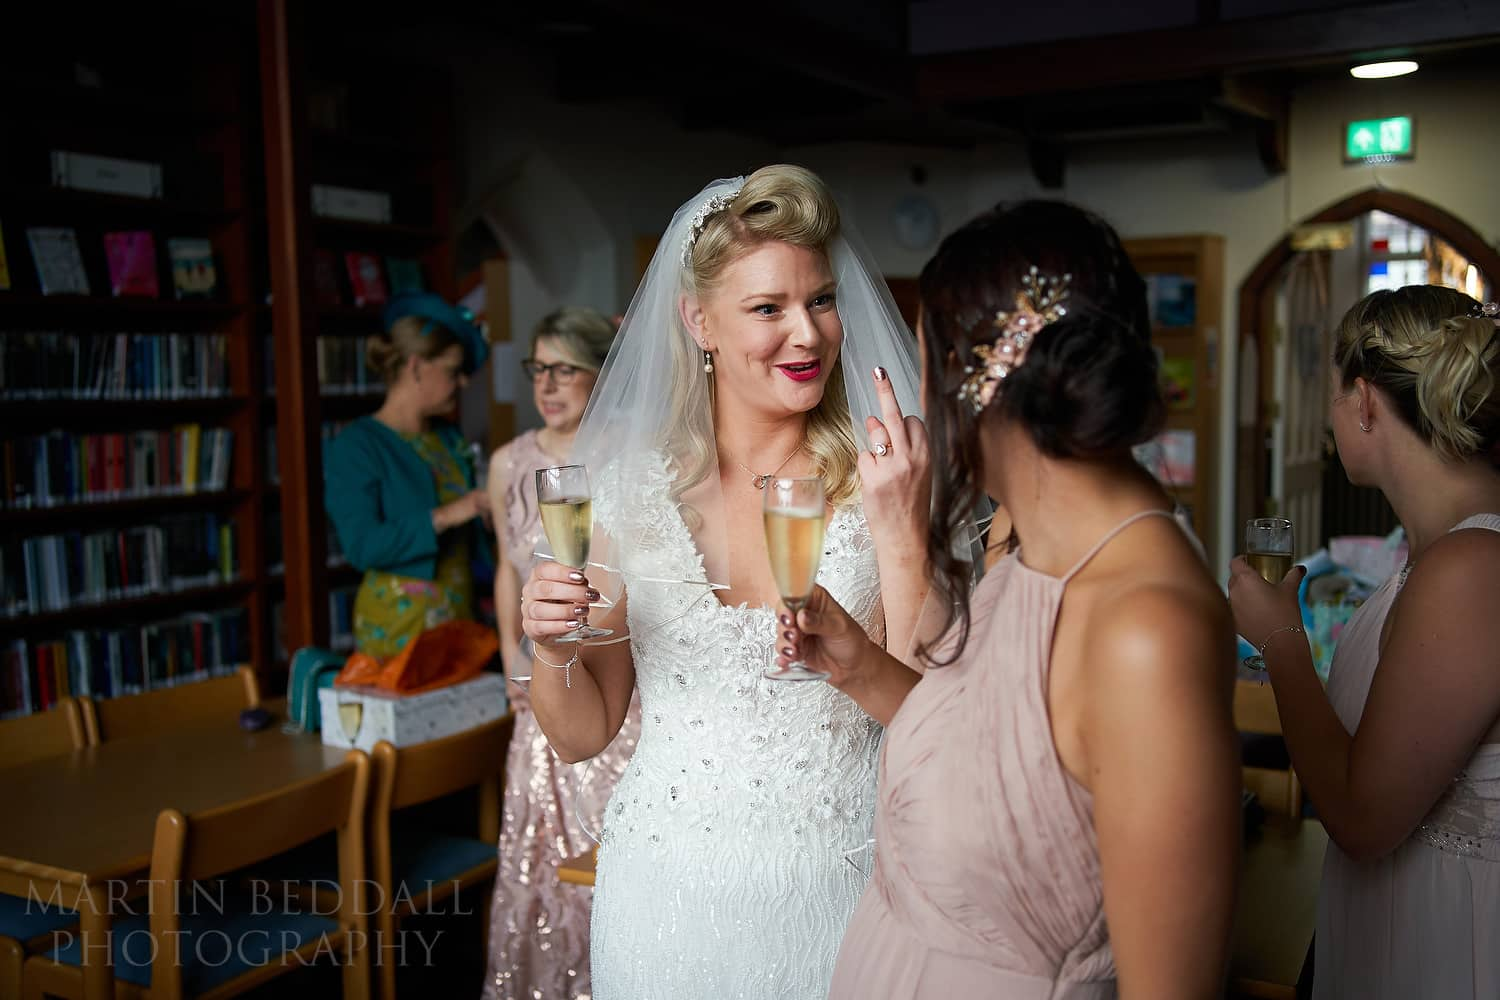 Bride joking with a friend